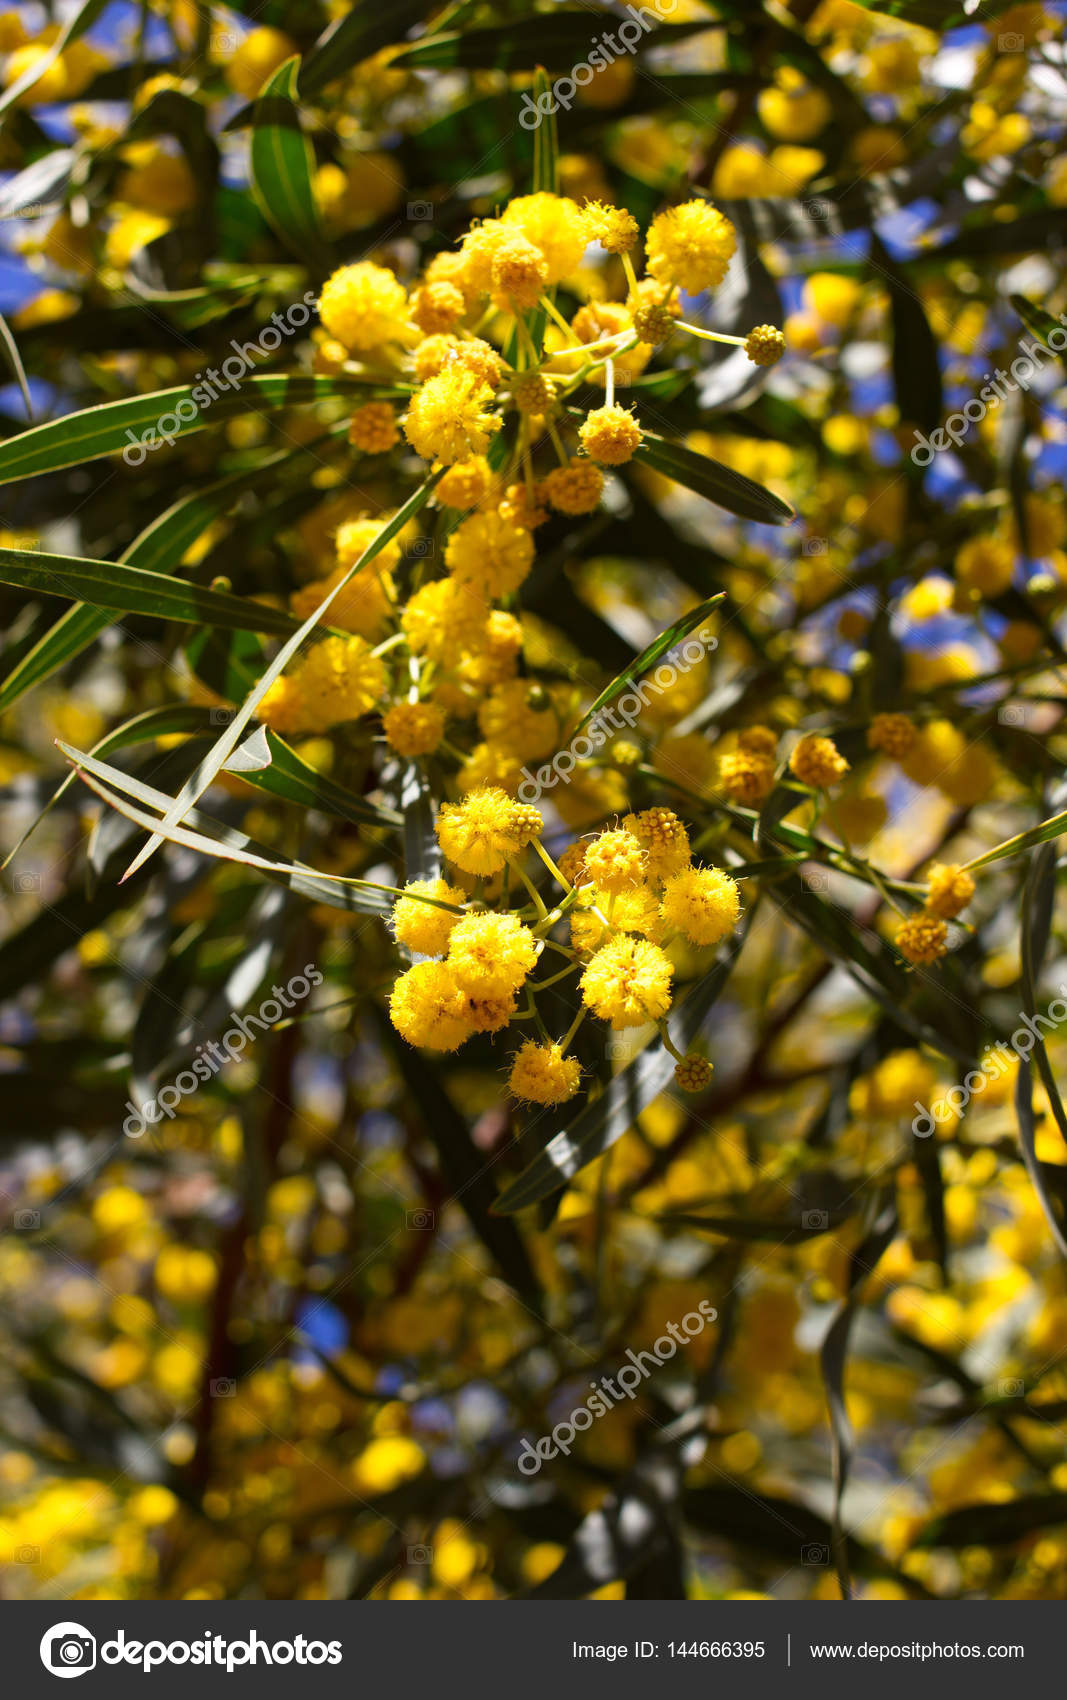 Yellow ball of mimosa flowers woman s day 8 march stock photo yellow ball of mimosa flowers woman s day 8 march stock photo mightylinksfo